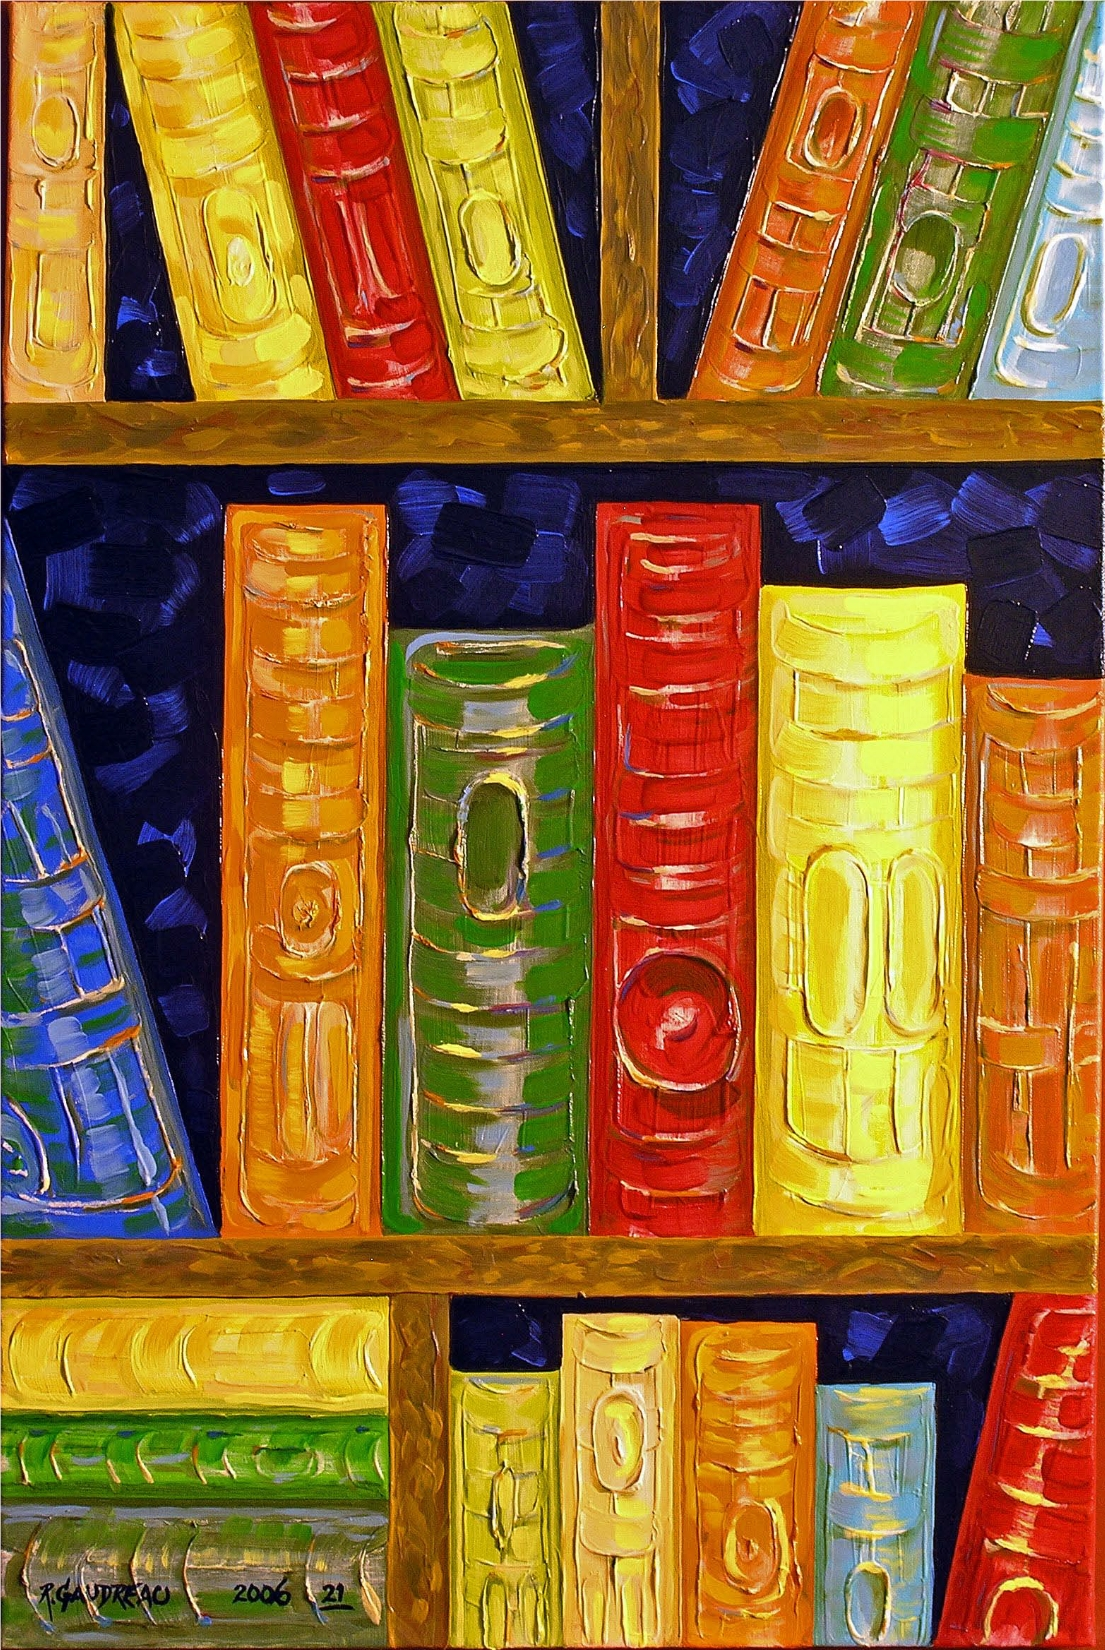 21Books 2006 oil on canvas 36 x 24 inches